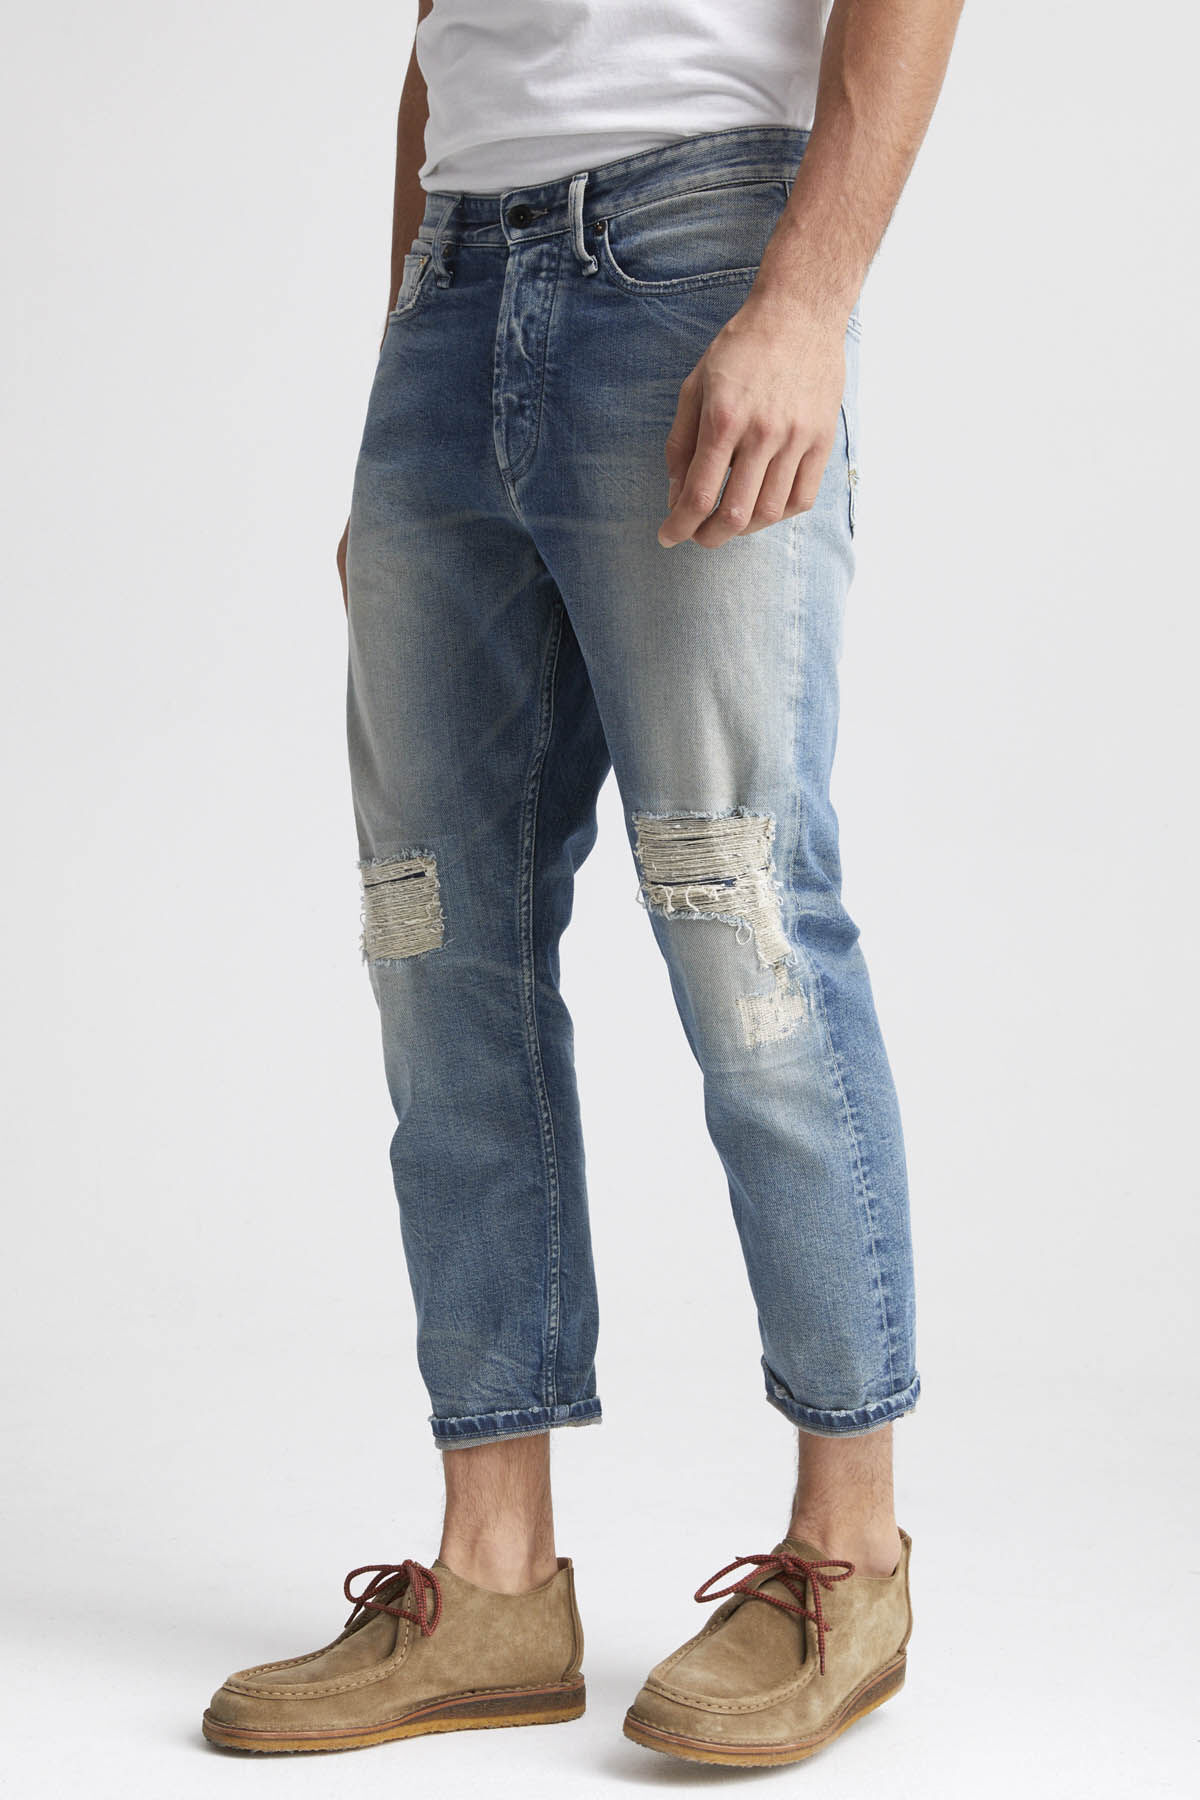 CROP Signature Selvedge Denim - Low Crotch Cropped Fit